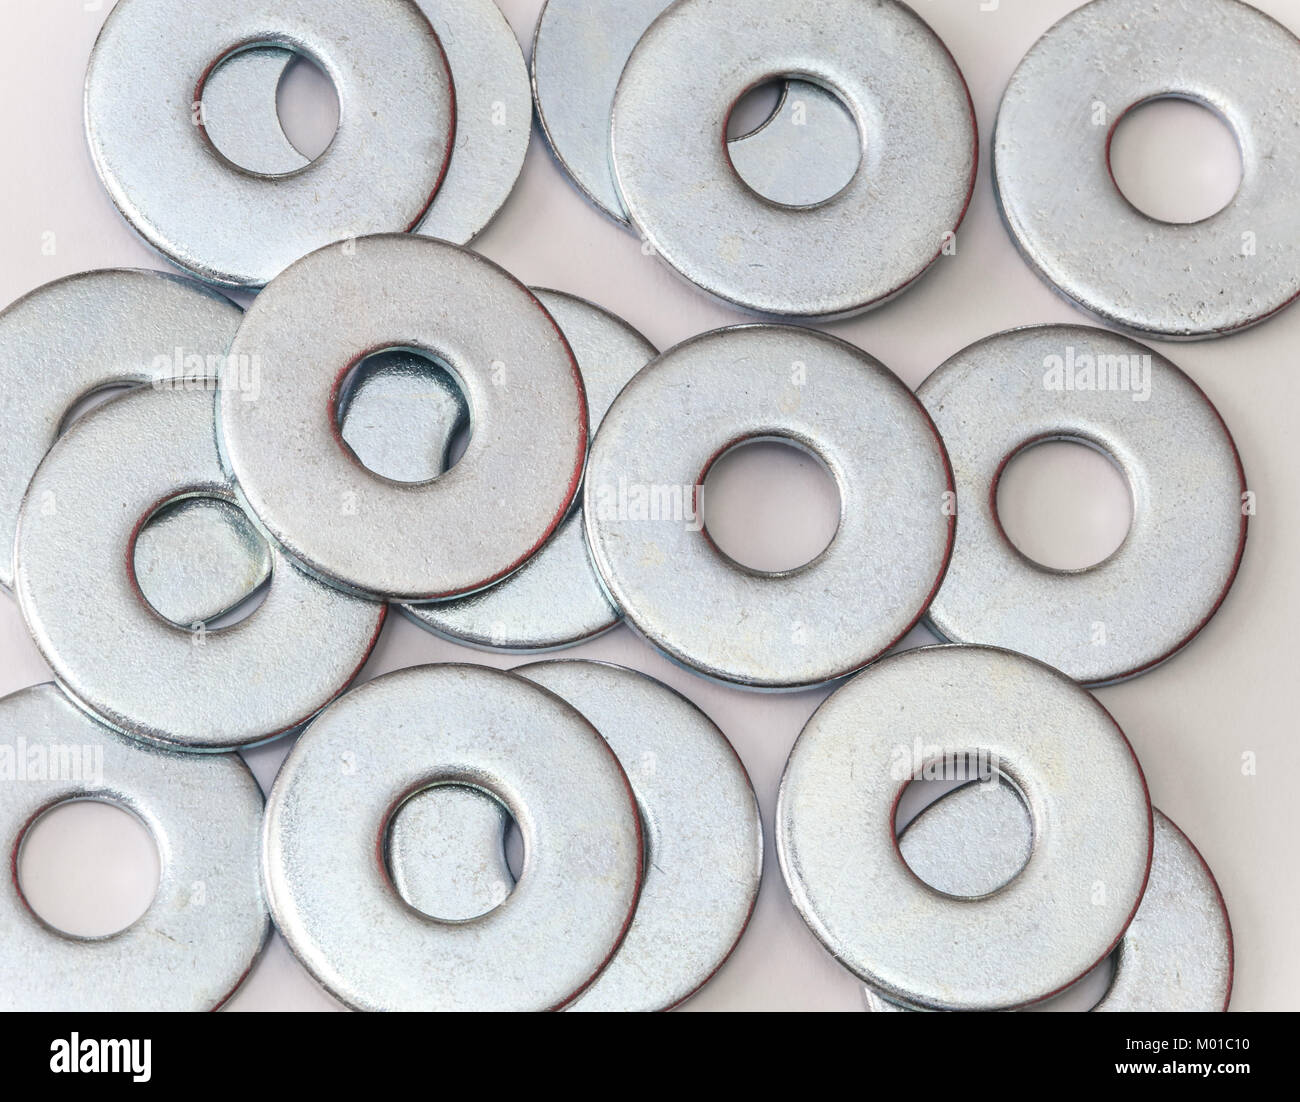 Pile of flat metal washers for screws and fasteners - Stock Image